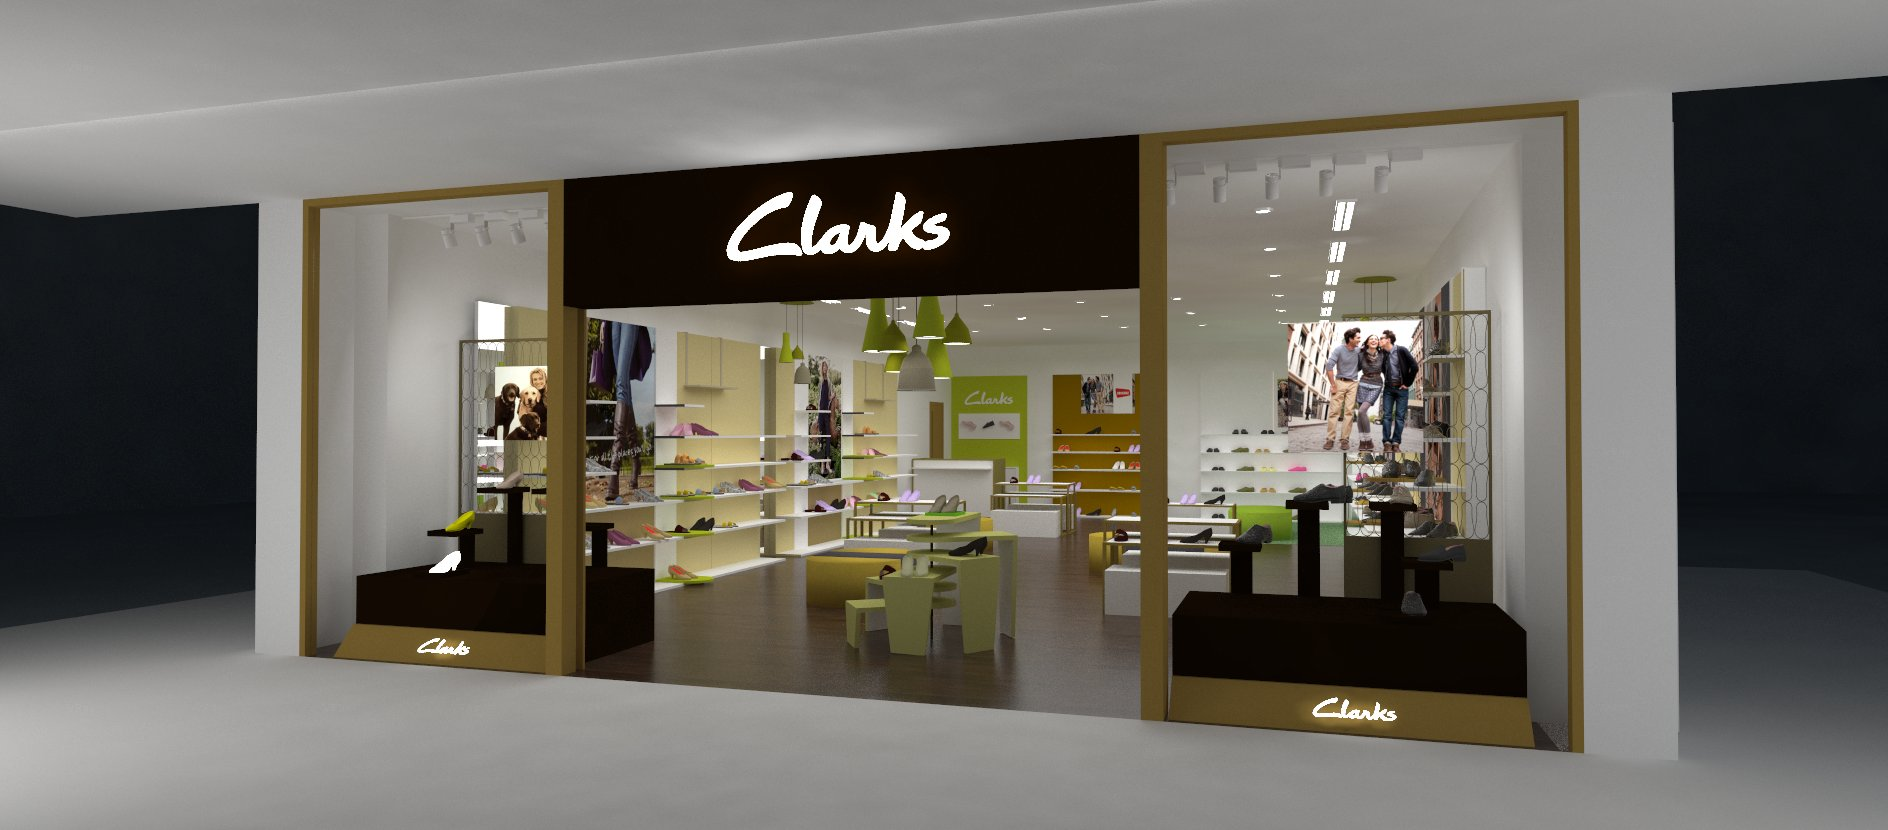 95f75449 Completed: Clarks C7 @ Mid Valley, Kuala Lumpur